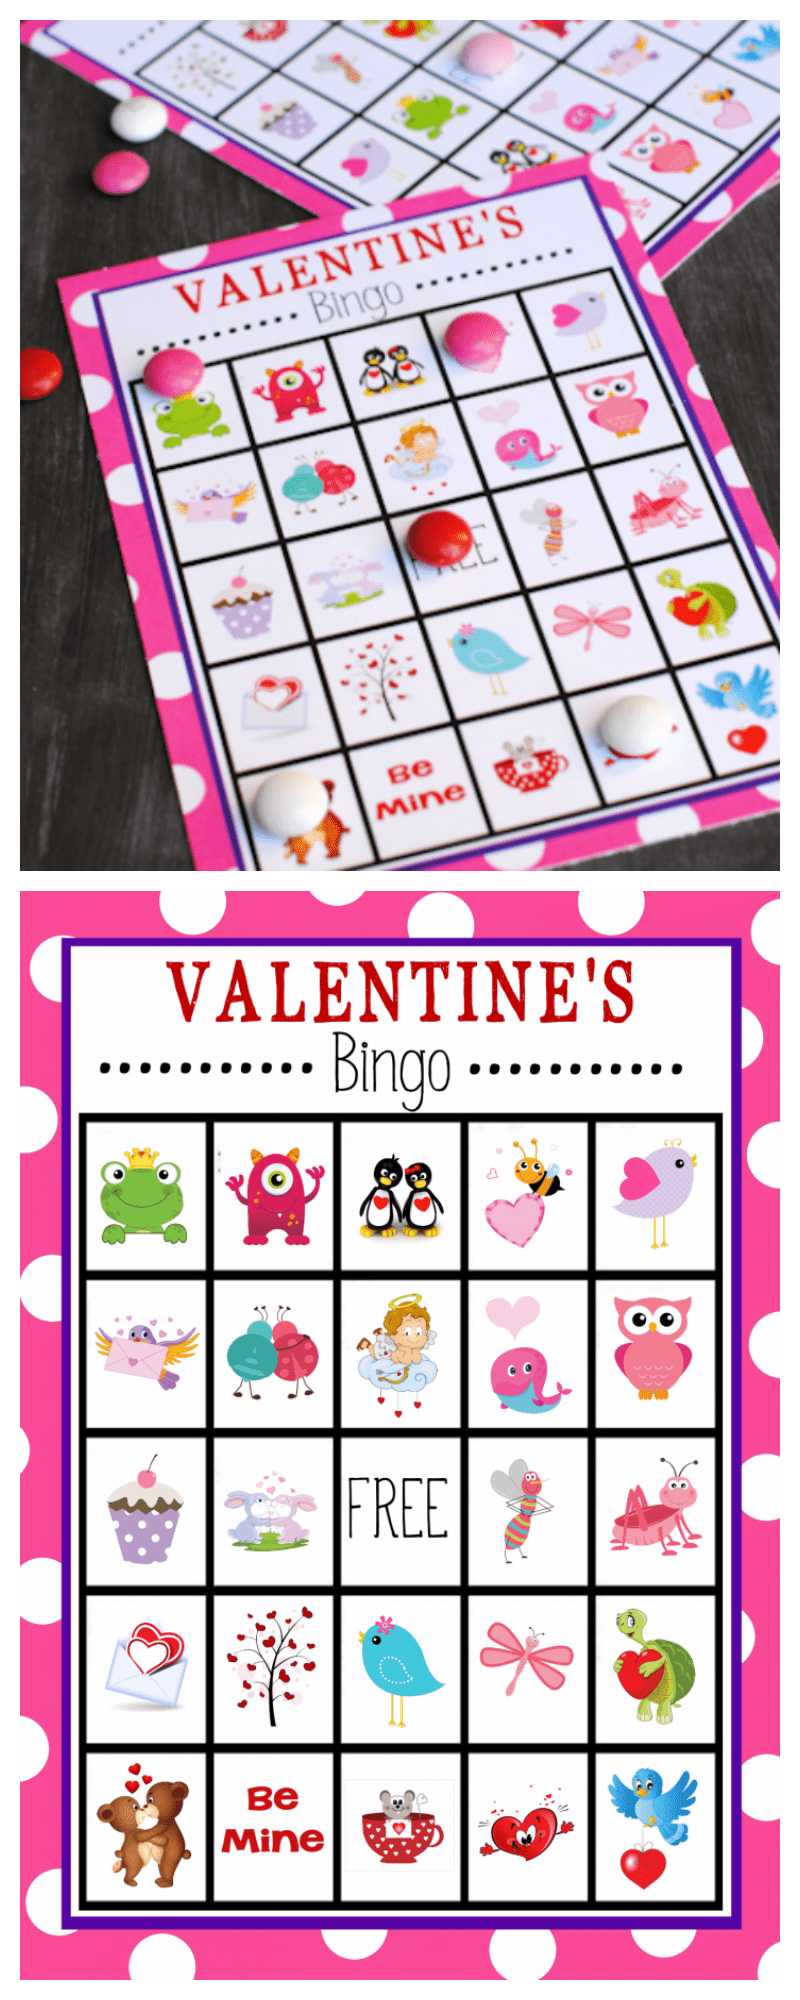 photo relating to Printable Valentine Bingo Cards named Valentines Bingo Sport in the direction of Print Enjoy Entertaining-Squared